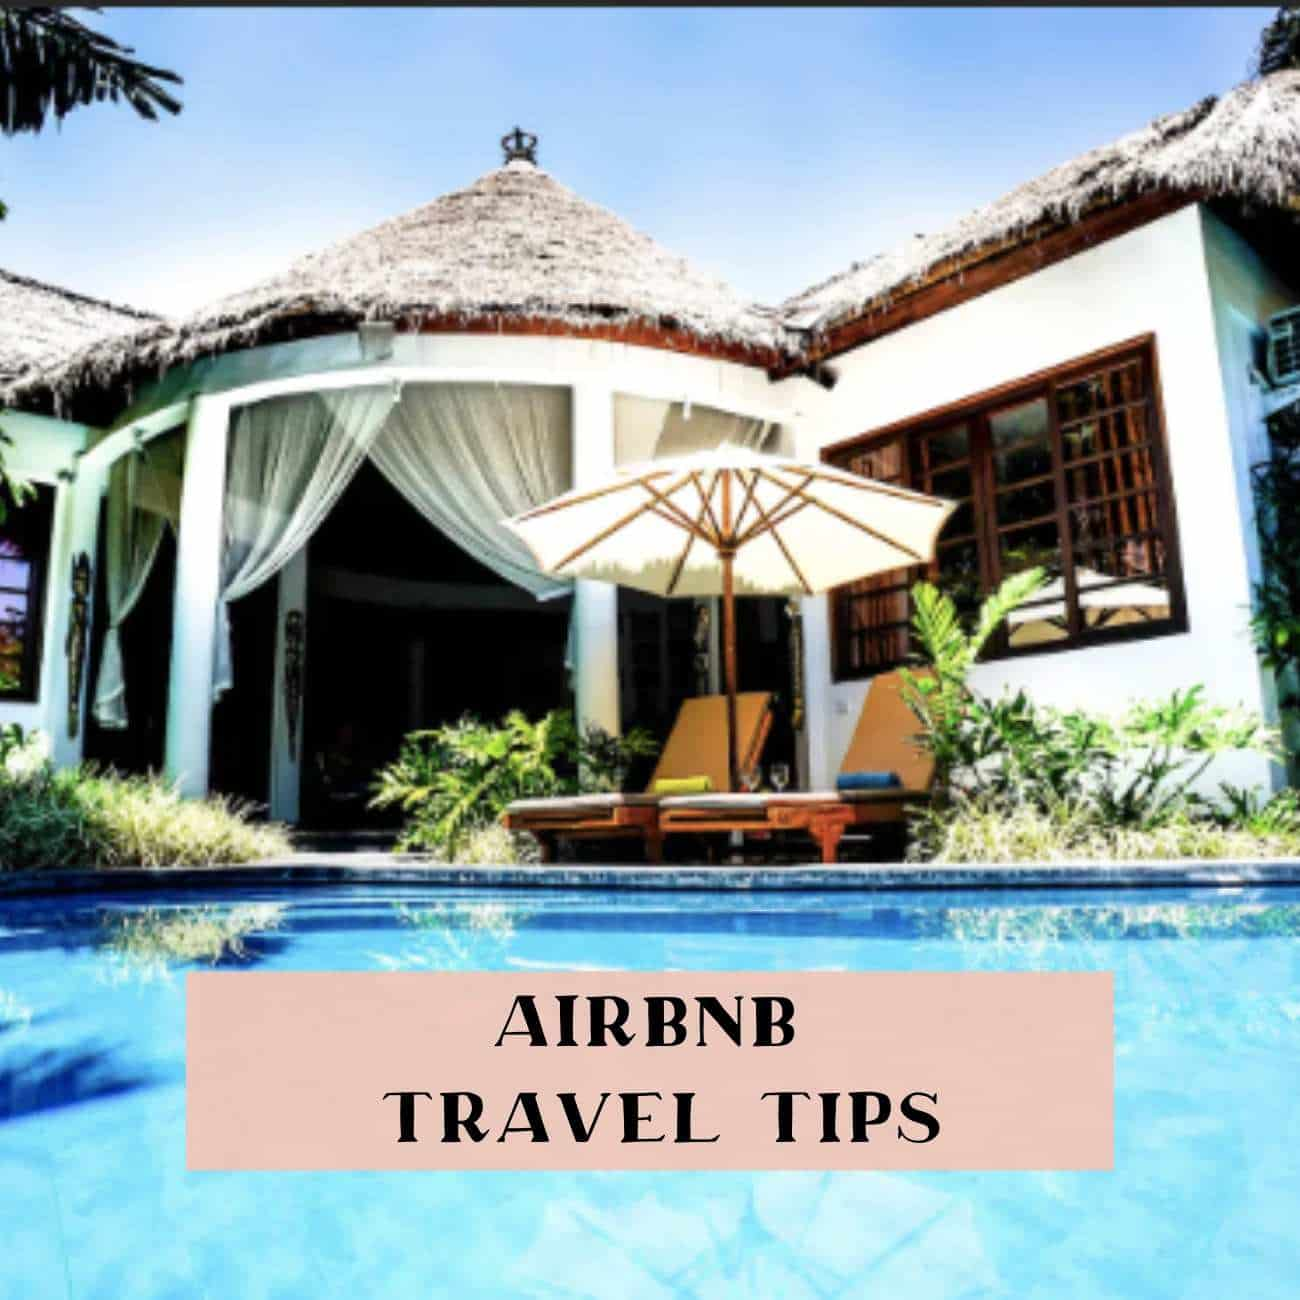 Travelling with Airbnb